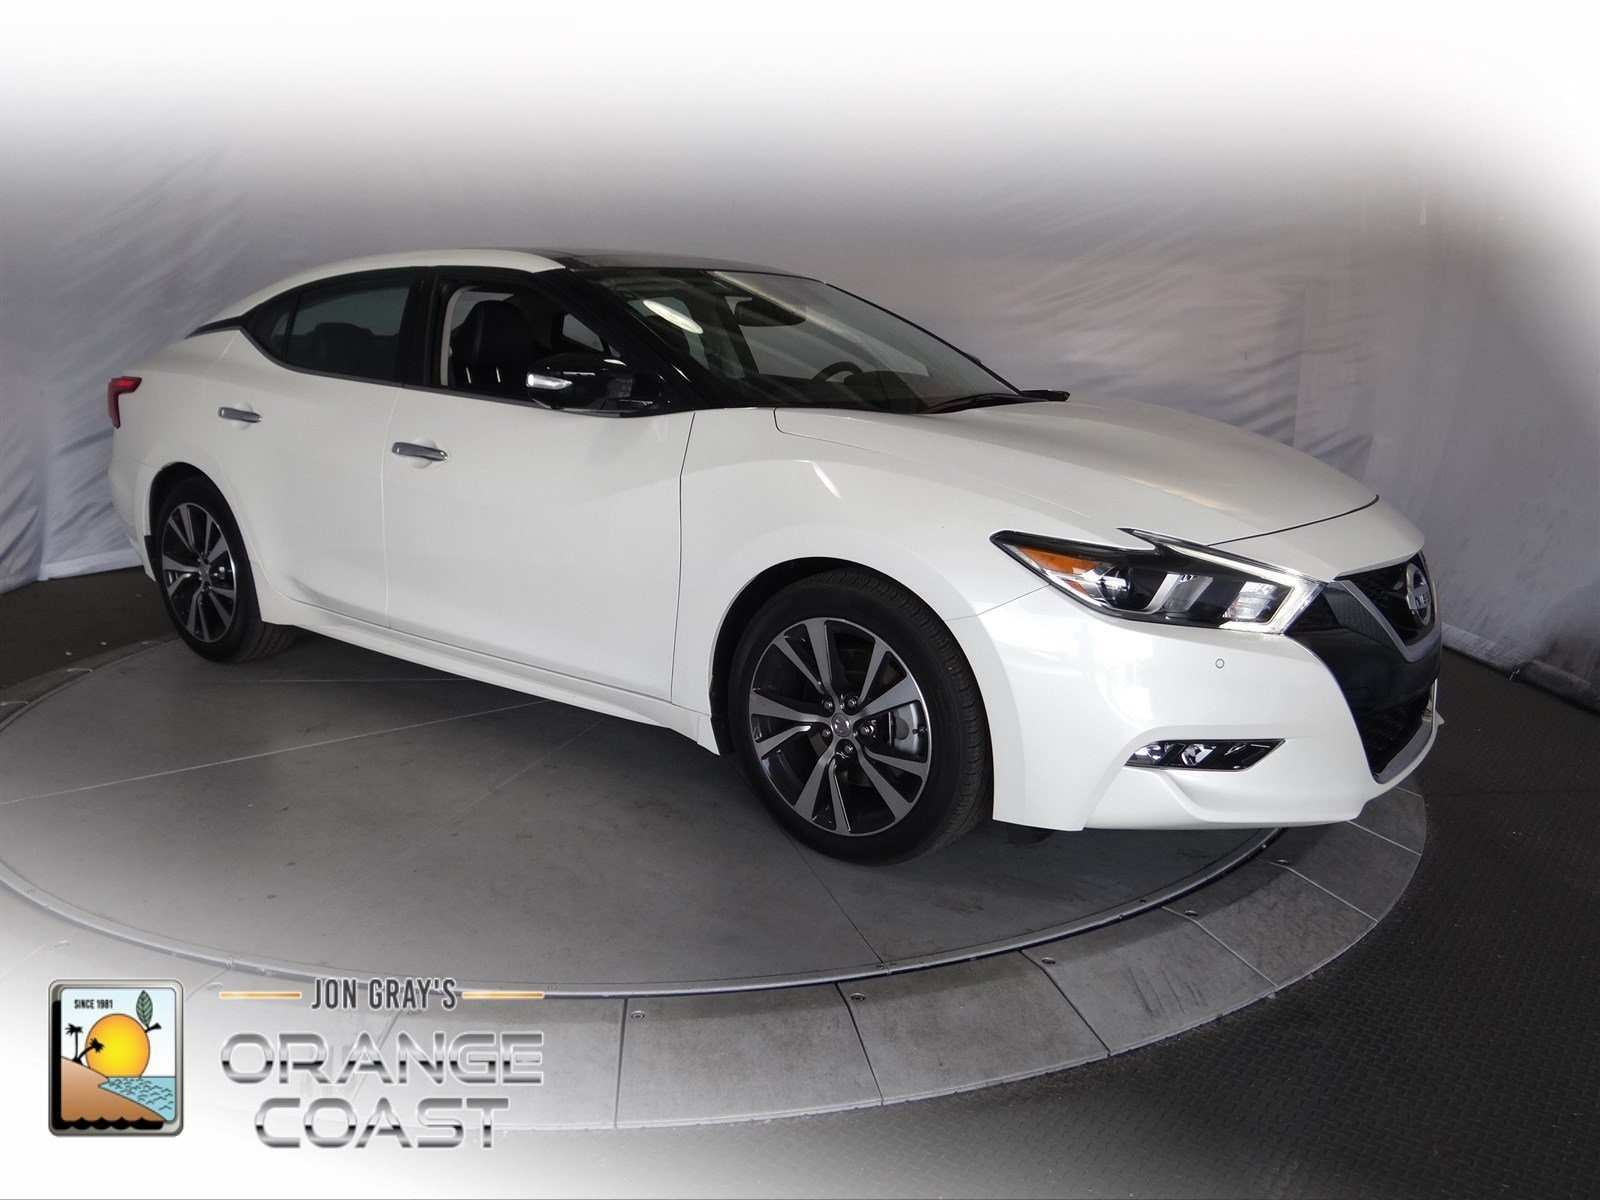 63 All New When Does The 2020 Nissan Maxima Come Out Review And Release Date